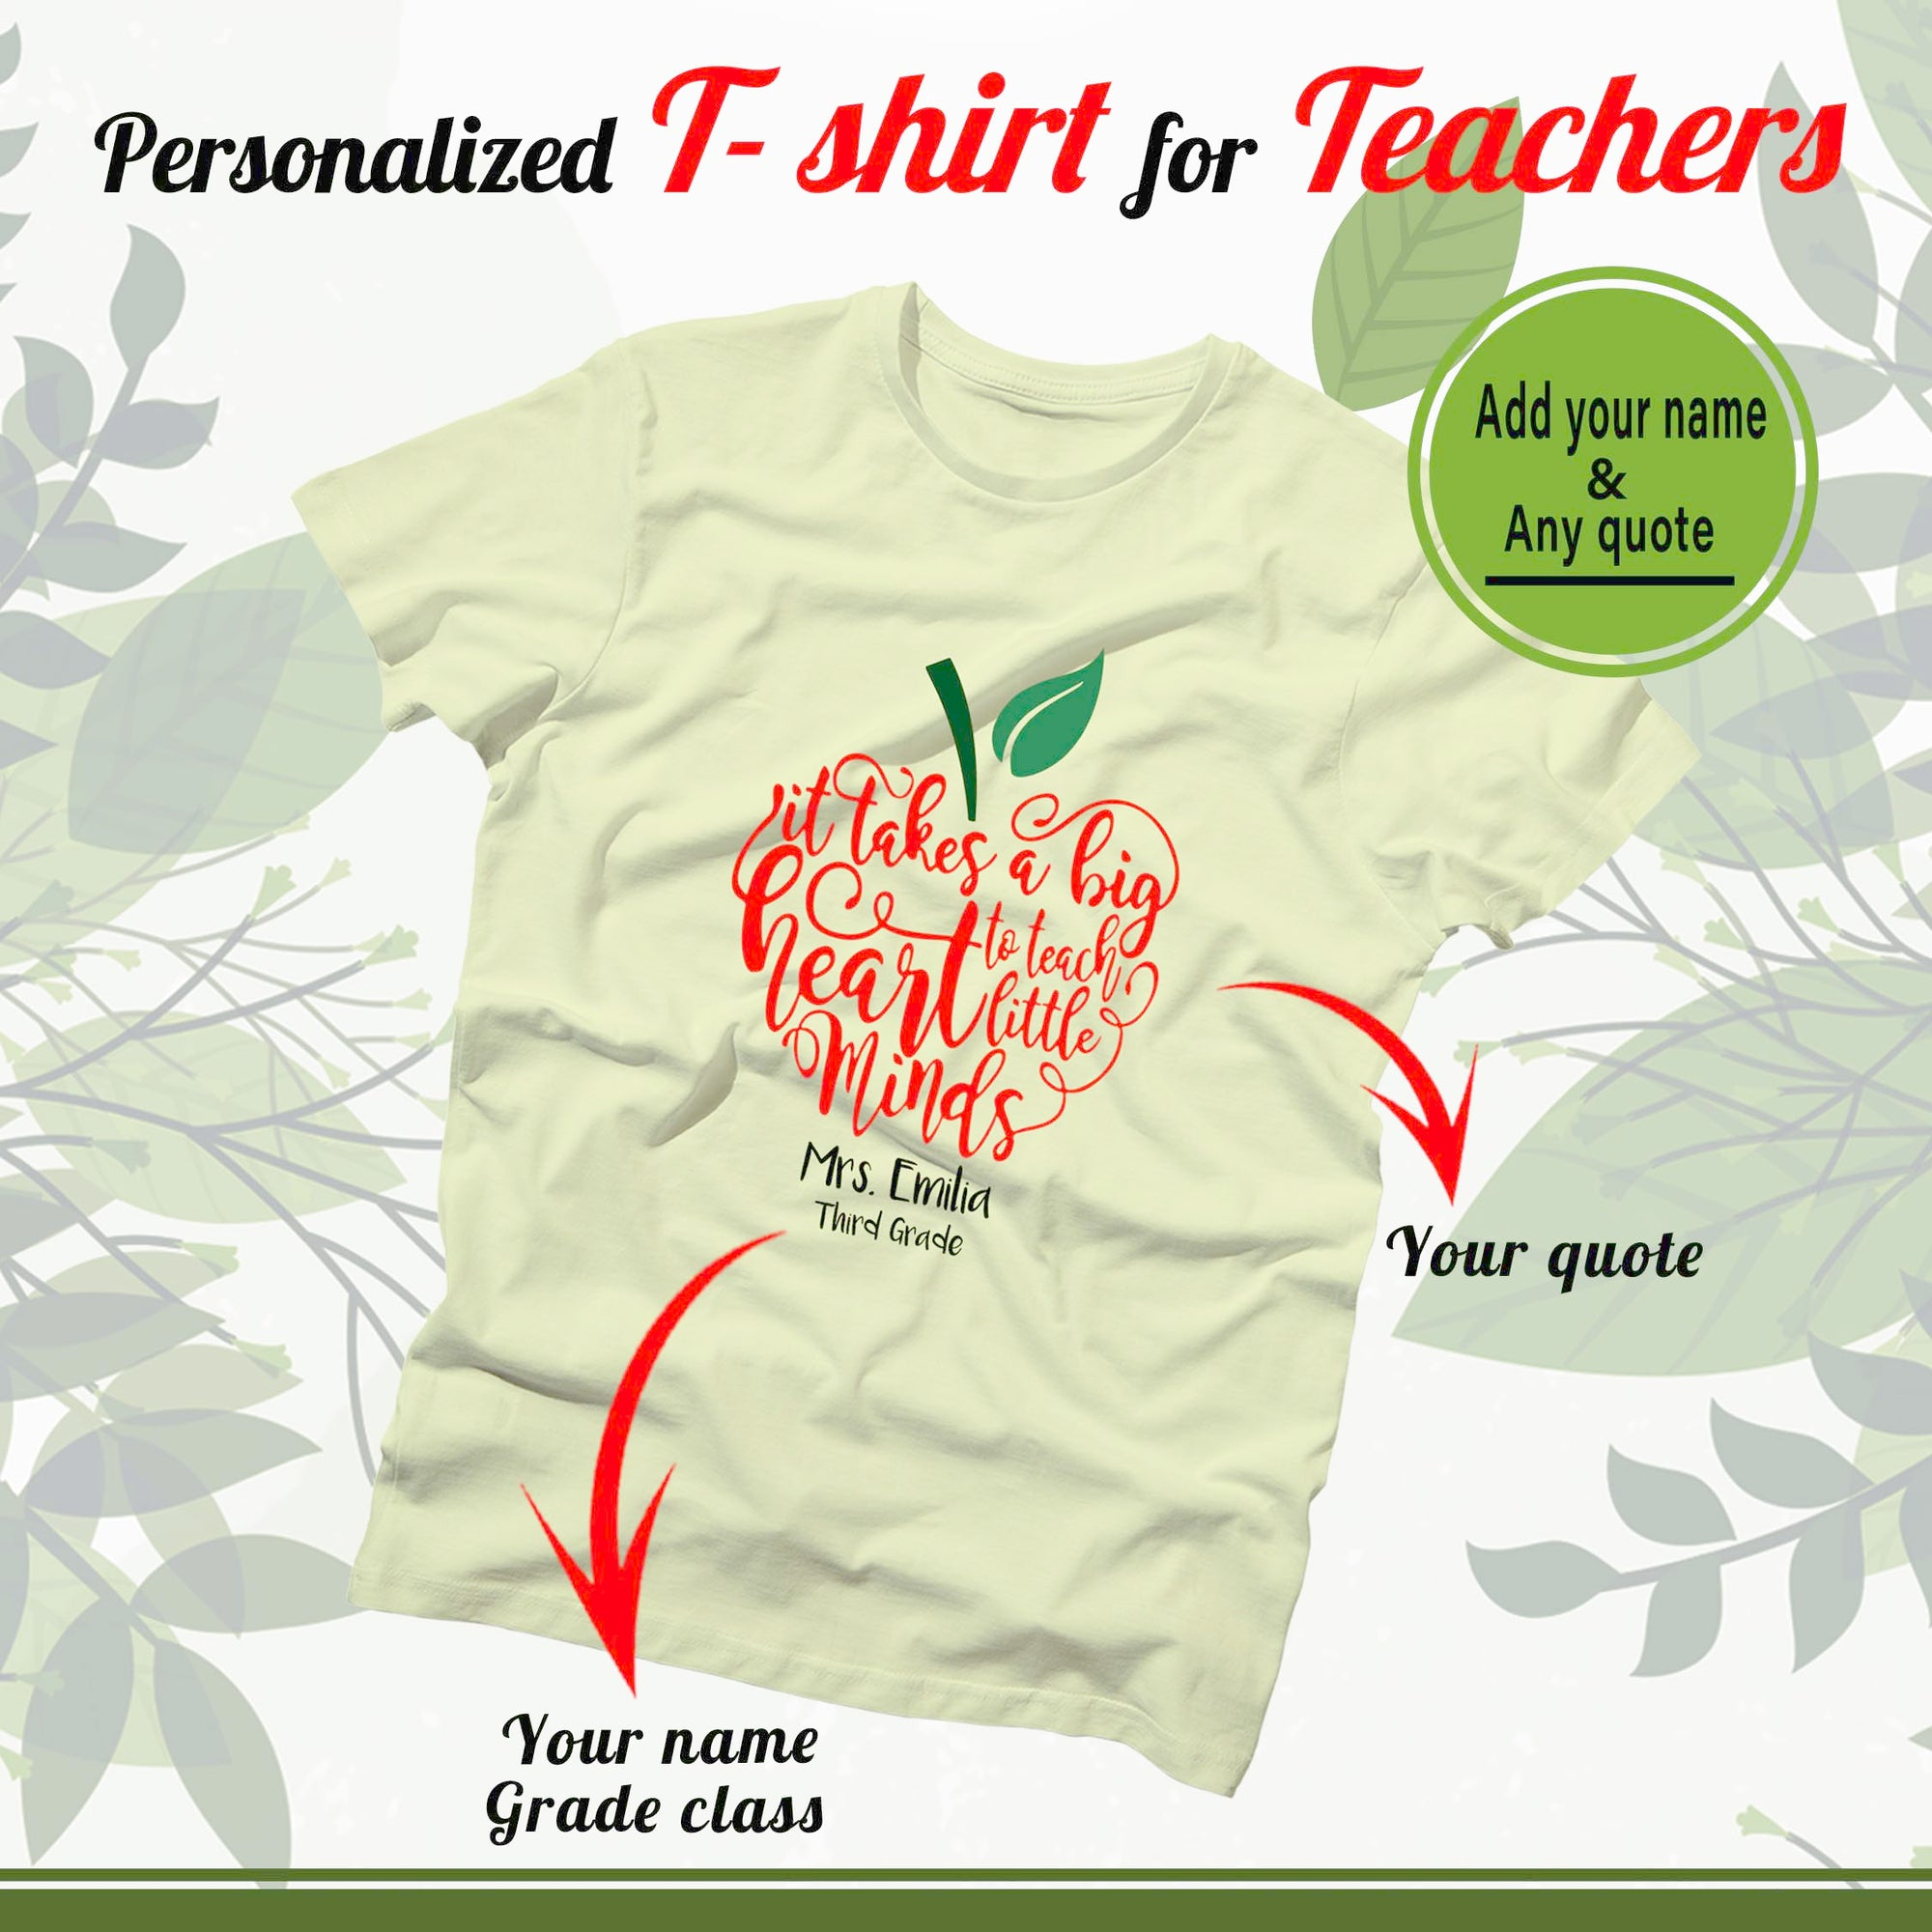 PERSONALIZED T-SHIRT - upload your teacher quote & your name